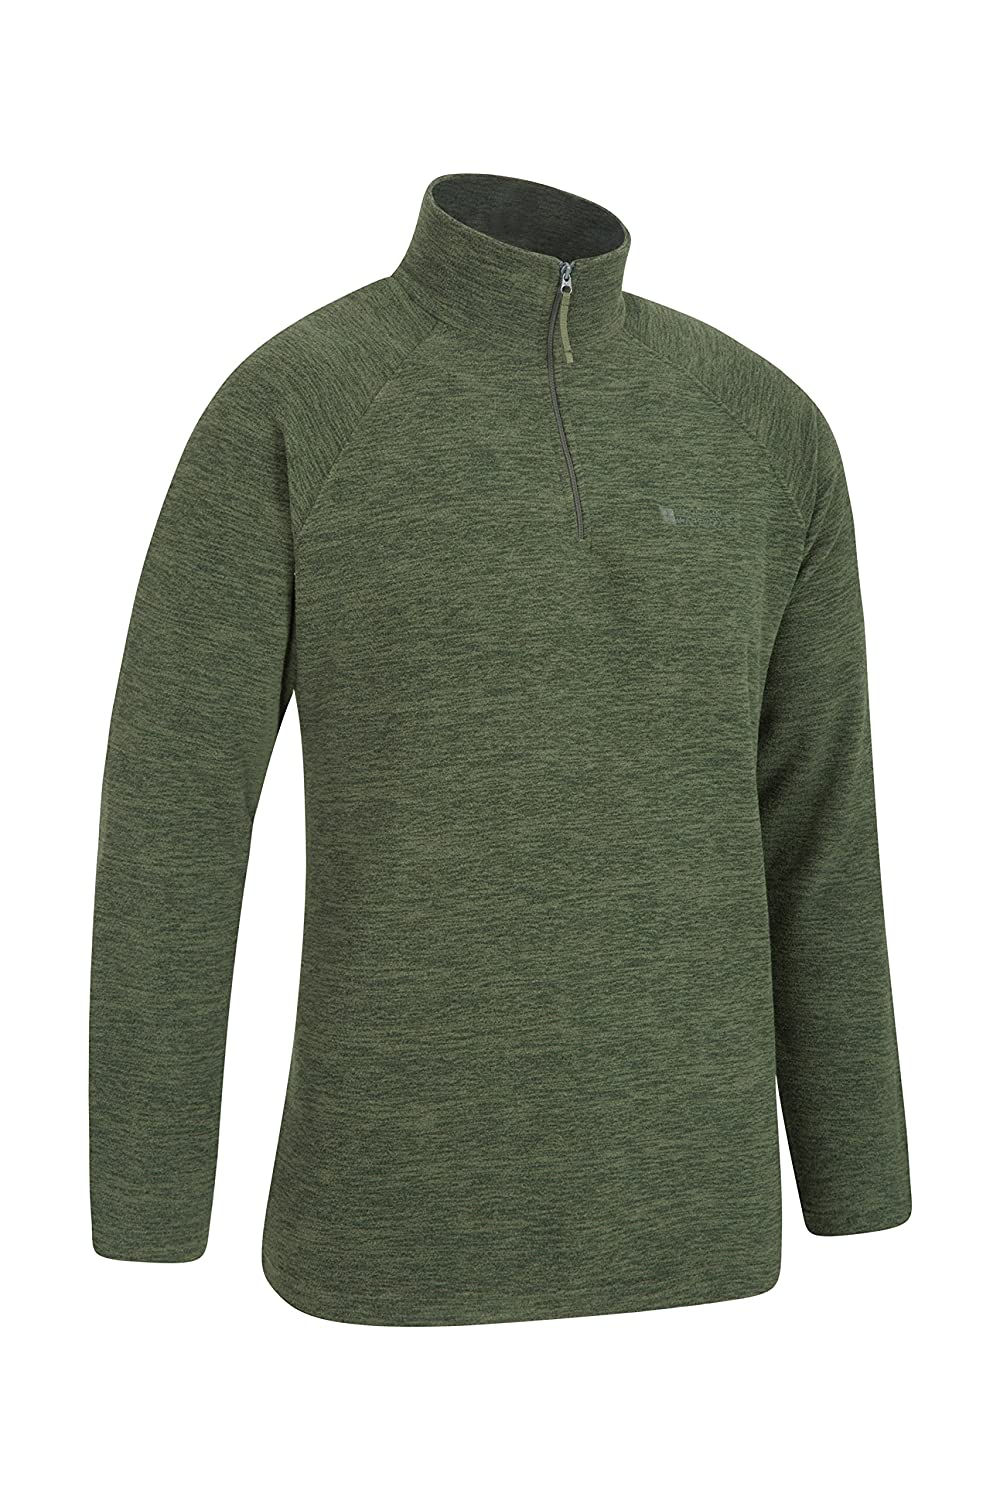 6c23fc0d44d Mountain Warehouse Snowdon Mens Micro Fleece Top - Warm